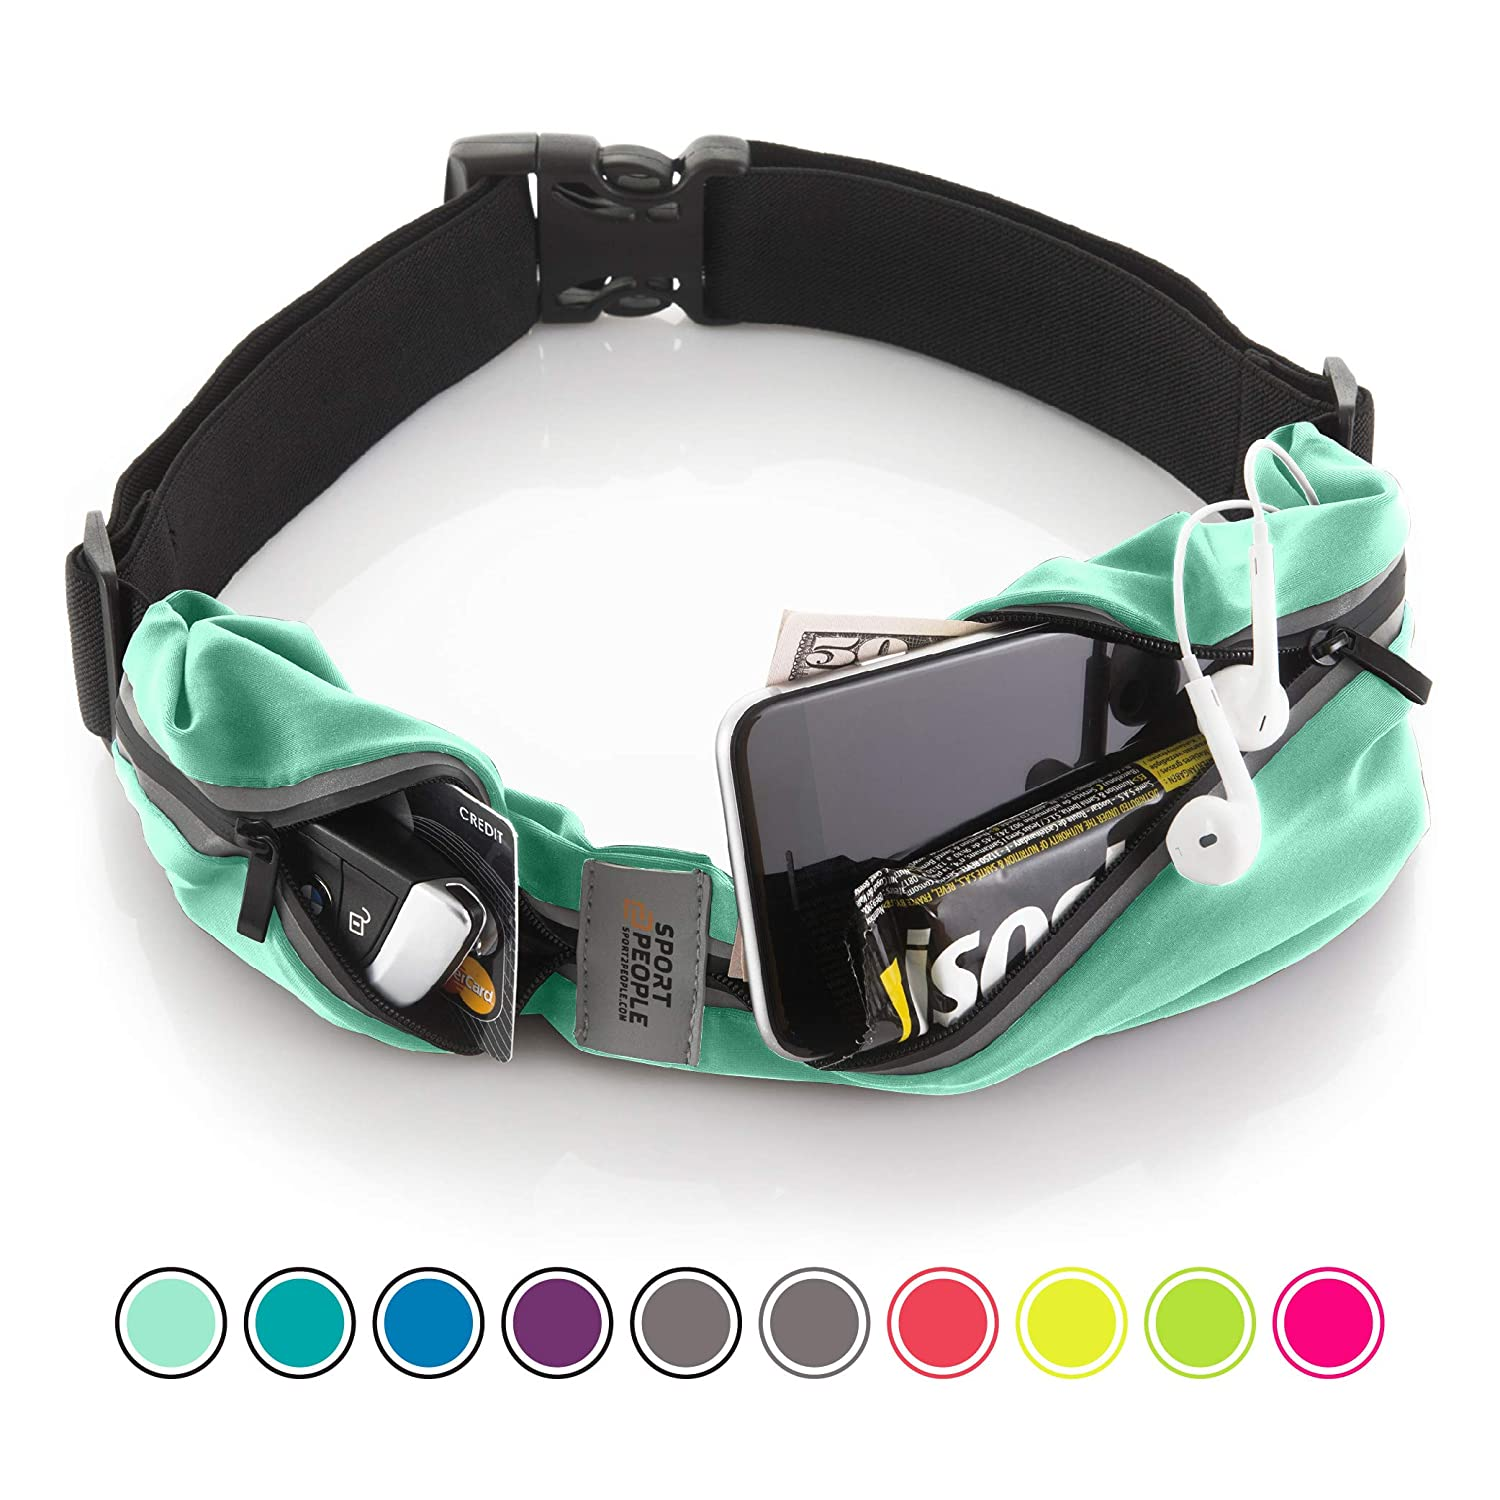 Running Belt USA Patented – iPhone X 6 7 8 Plus Pouch for Runners . Best Fitness Gear for Hands-Free Workout . Freerunning Reflective Waist Pack Phone Holder . Men, Women, Kids Running Accessories Sport2People